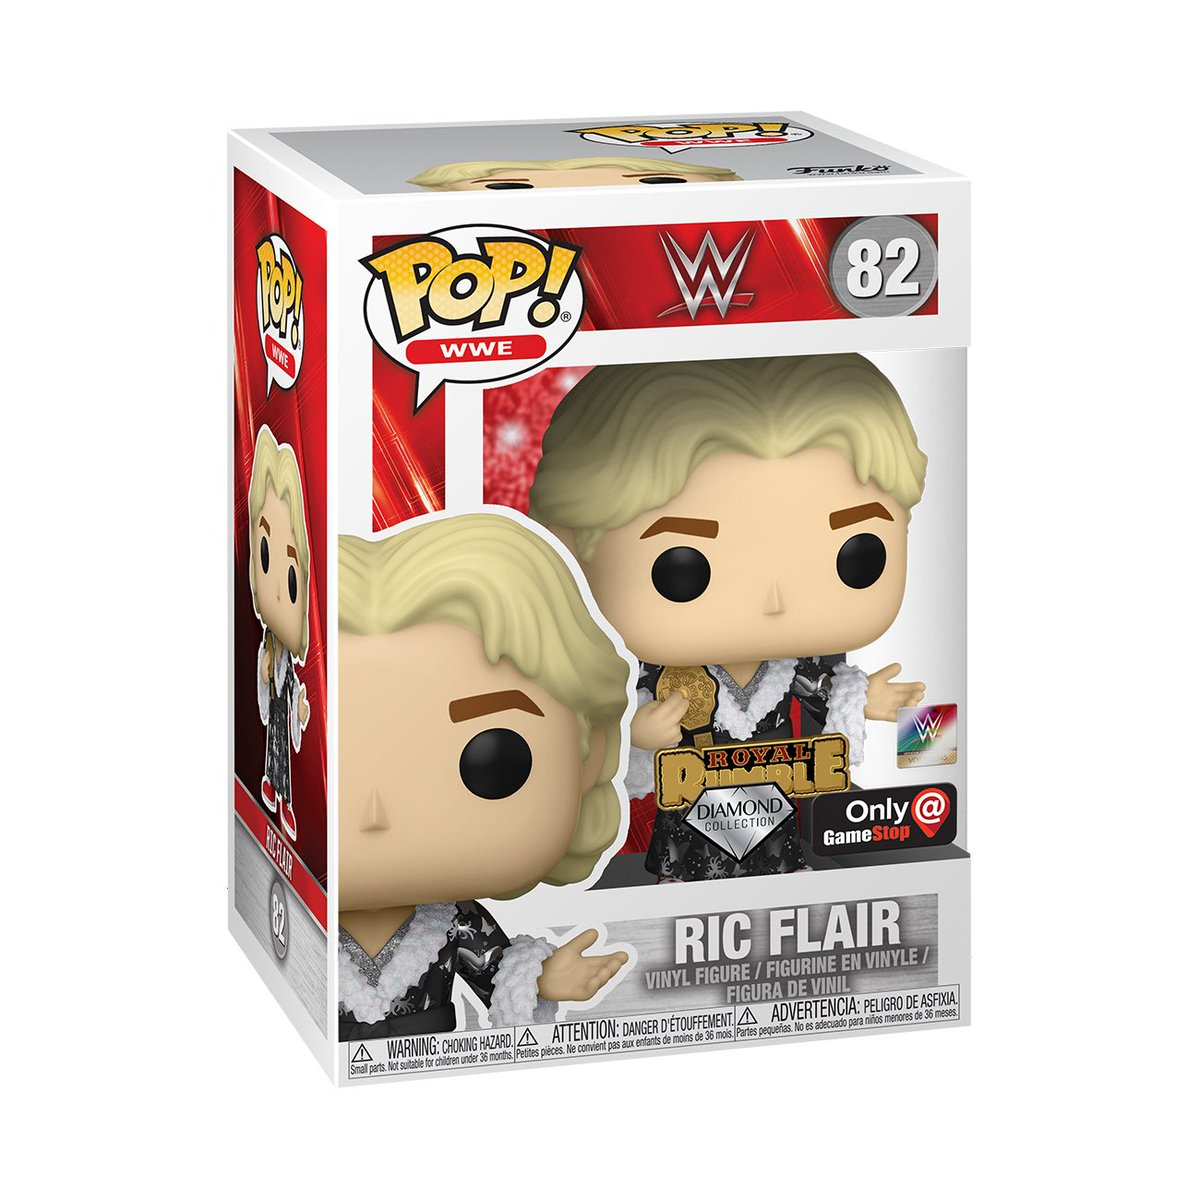 Preorder Now: GameStop exclusive Diamond 92 Ric Flair with pin! #Funko #Ad .